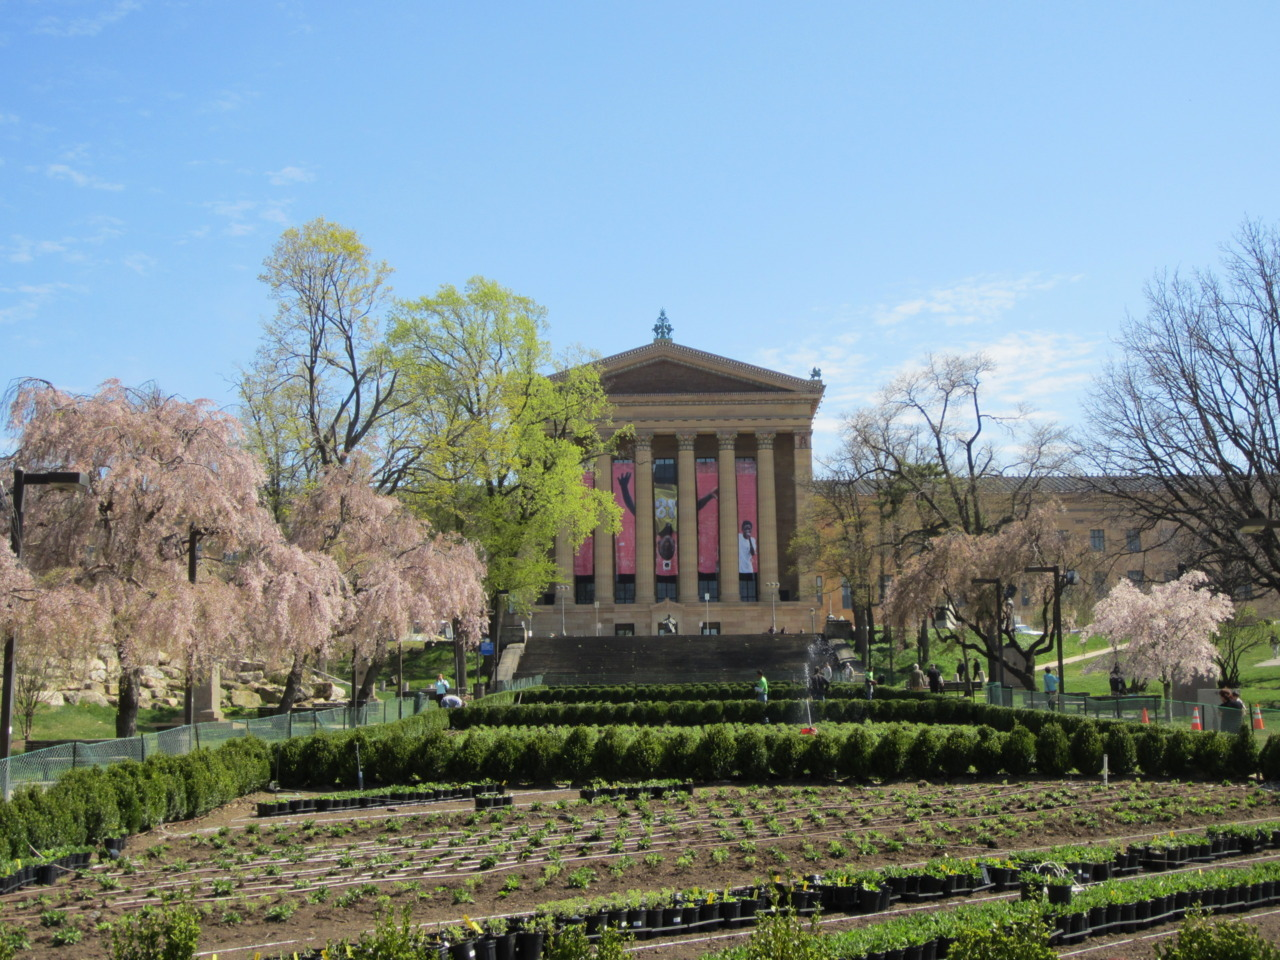 philamuseum:  Watch this space! 7,000 plants in red, yellow, blue and white will soon be bursting in vertical, horizontal, and diagonal lines between the West Entrance and the Italian Fountain. The idea for this garden was conceived by conceptual artist Sol LeWitt in 1981—his vision is at last being realized this summer.  With the weather we've been having in Philly, however, it may happen even sooner.   Sol Lewitt comes to life with plants?! Be still my beating heart! Paging MassMoCA! ~AR